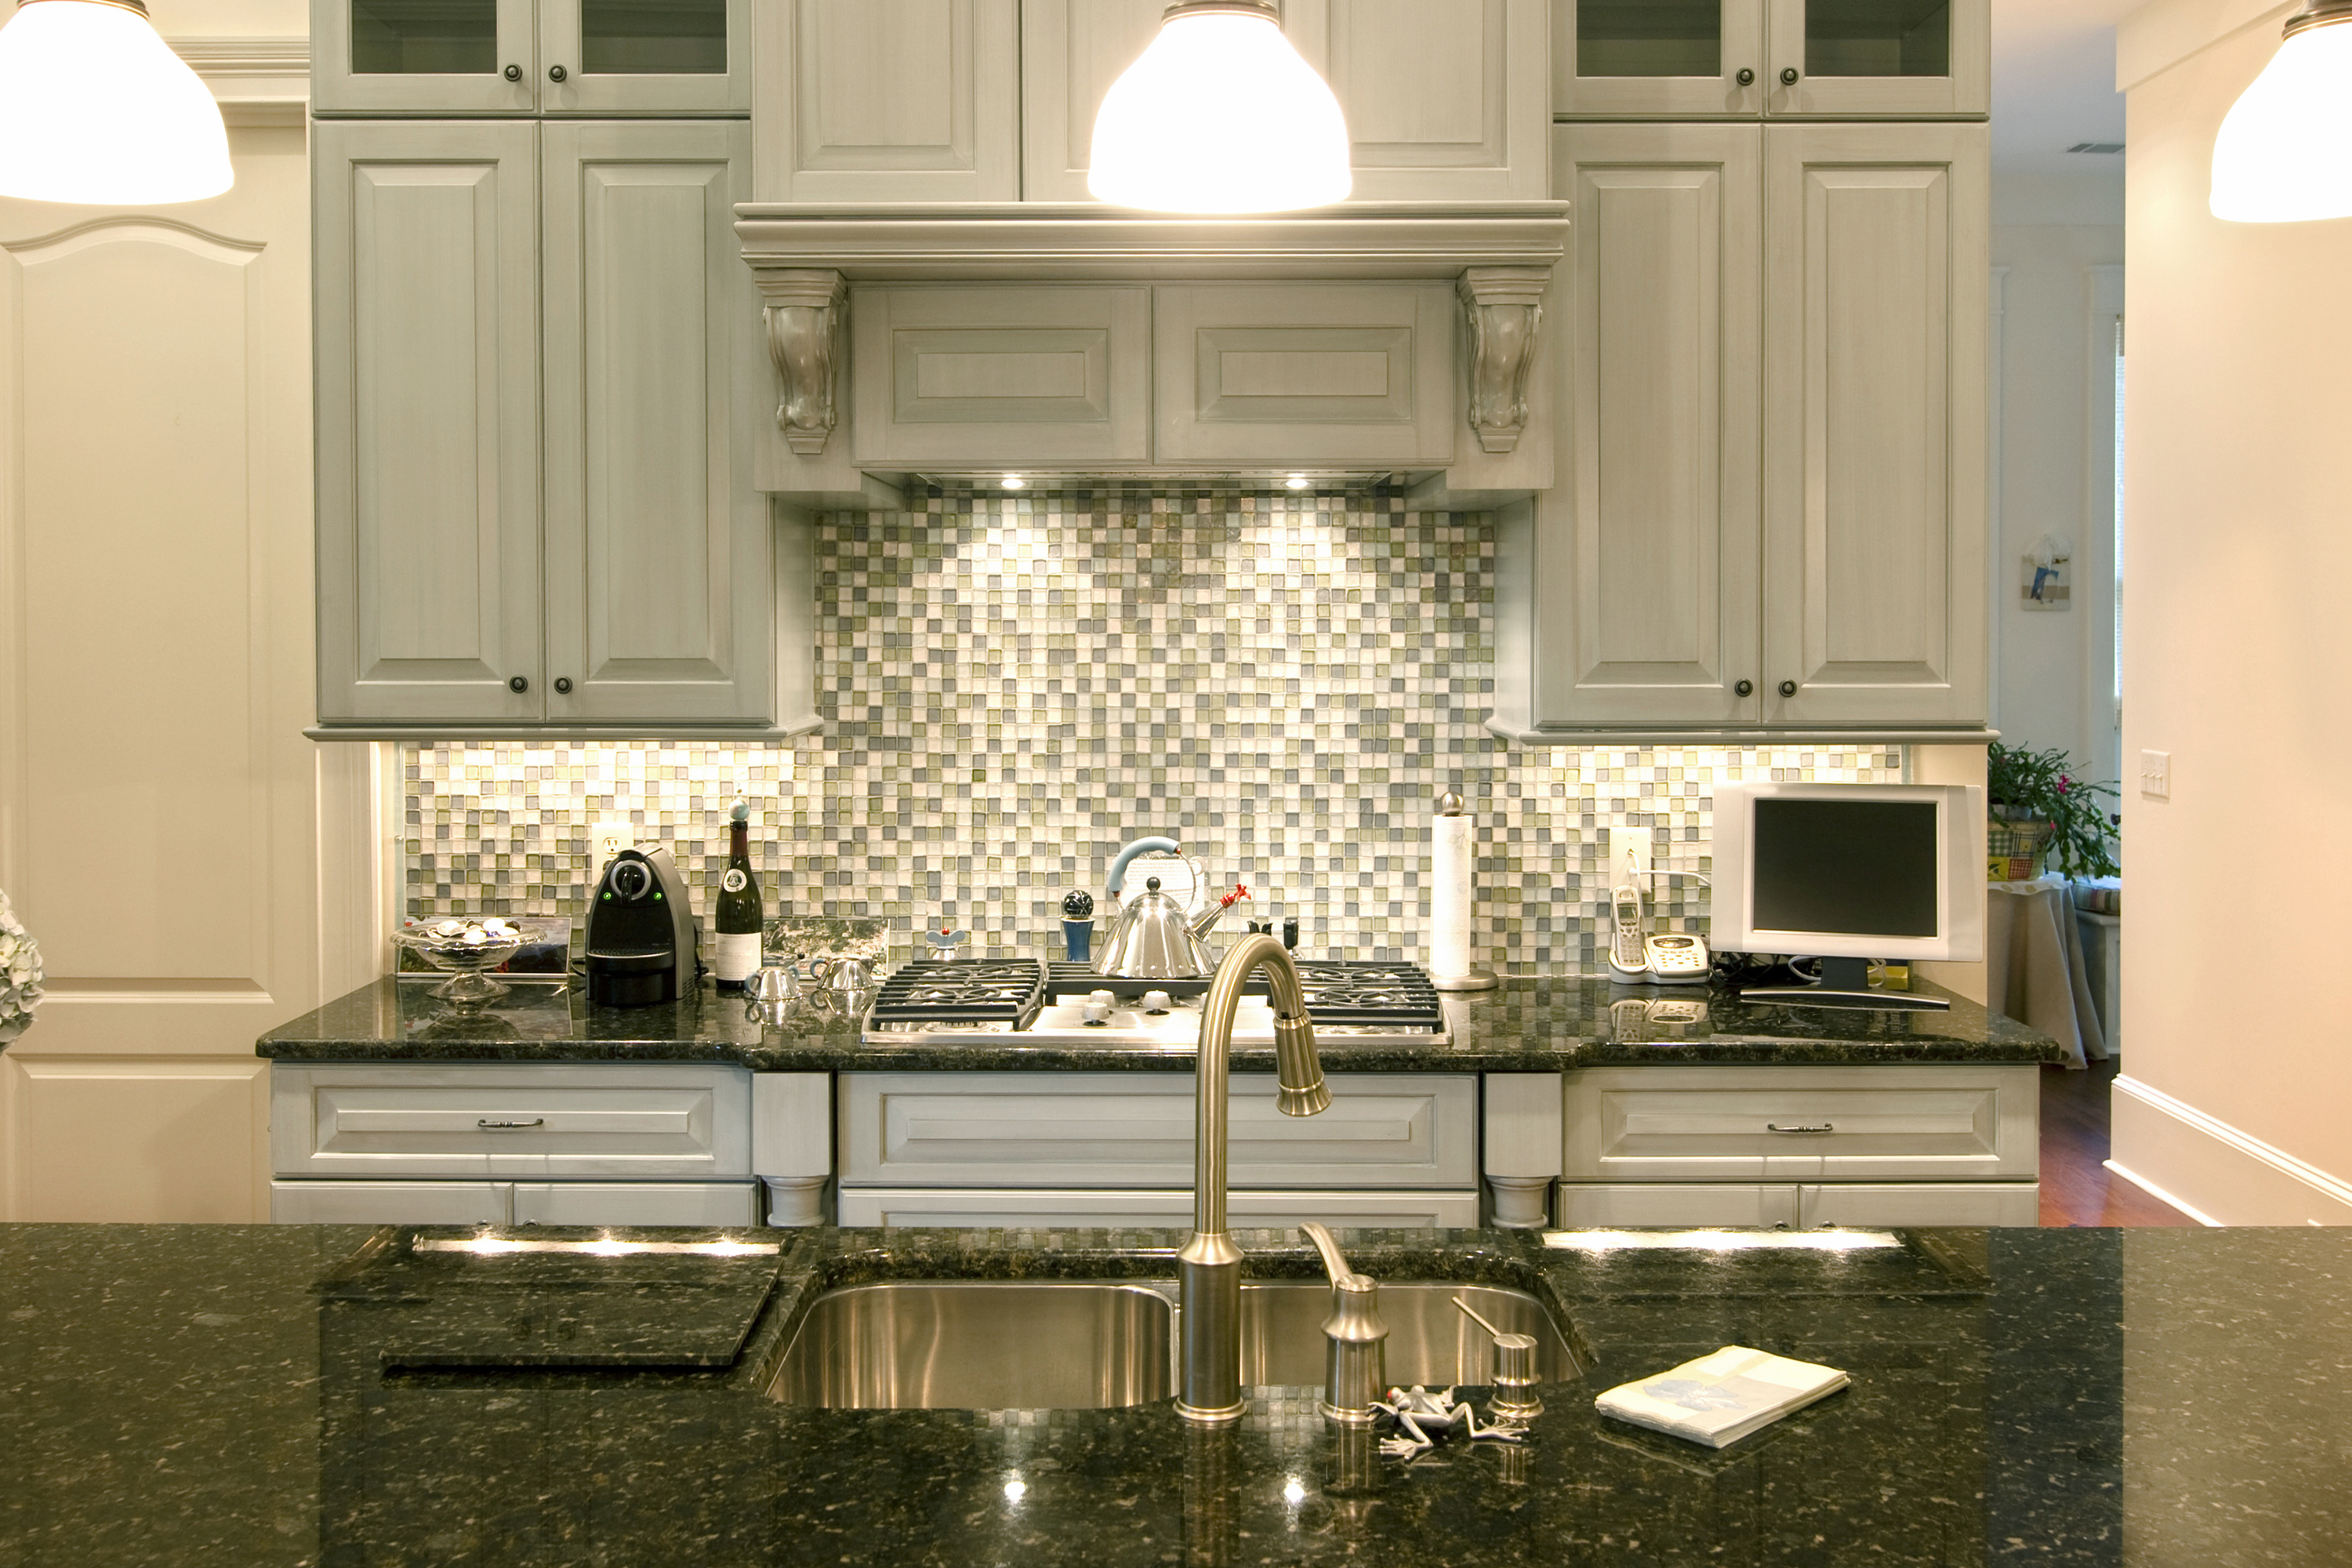 Granite Colors For Kitchen The Best Backsplash Ideas For Black Granite Countertops Home And